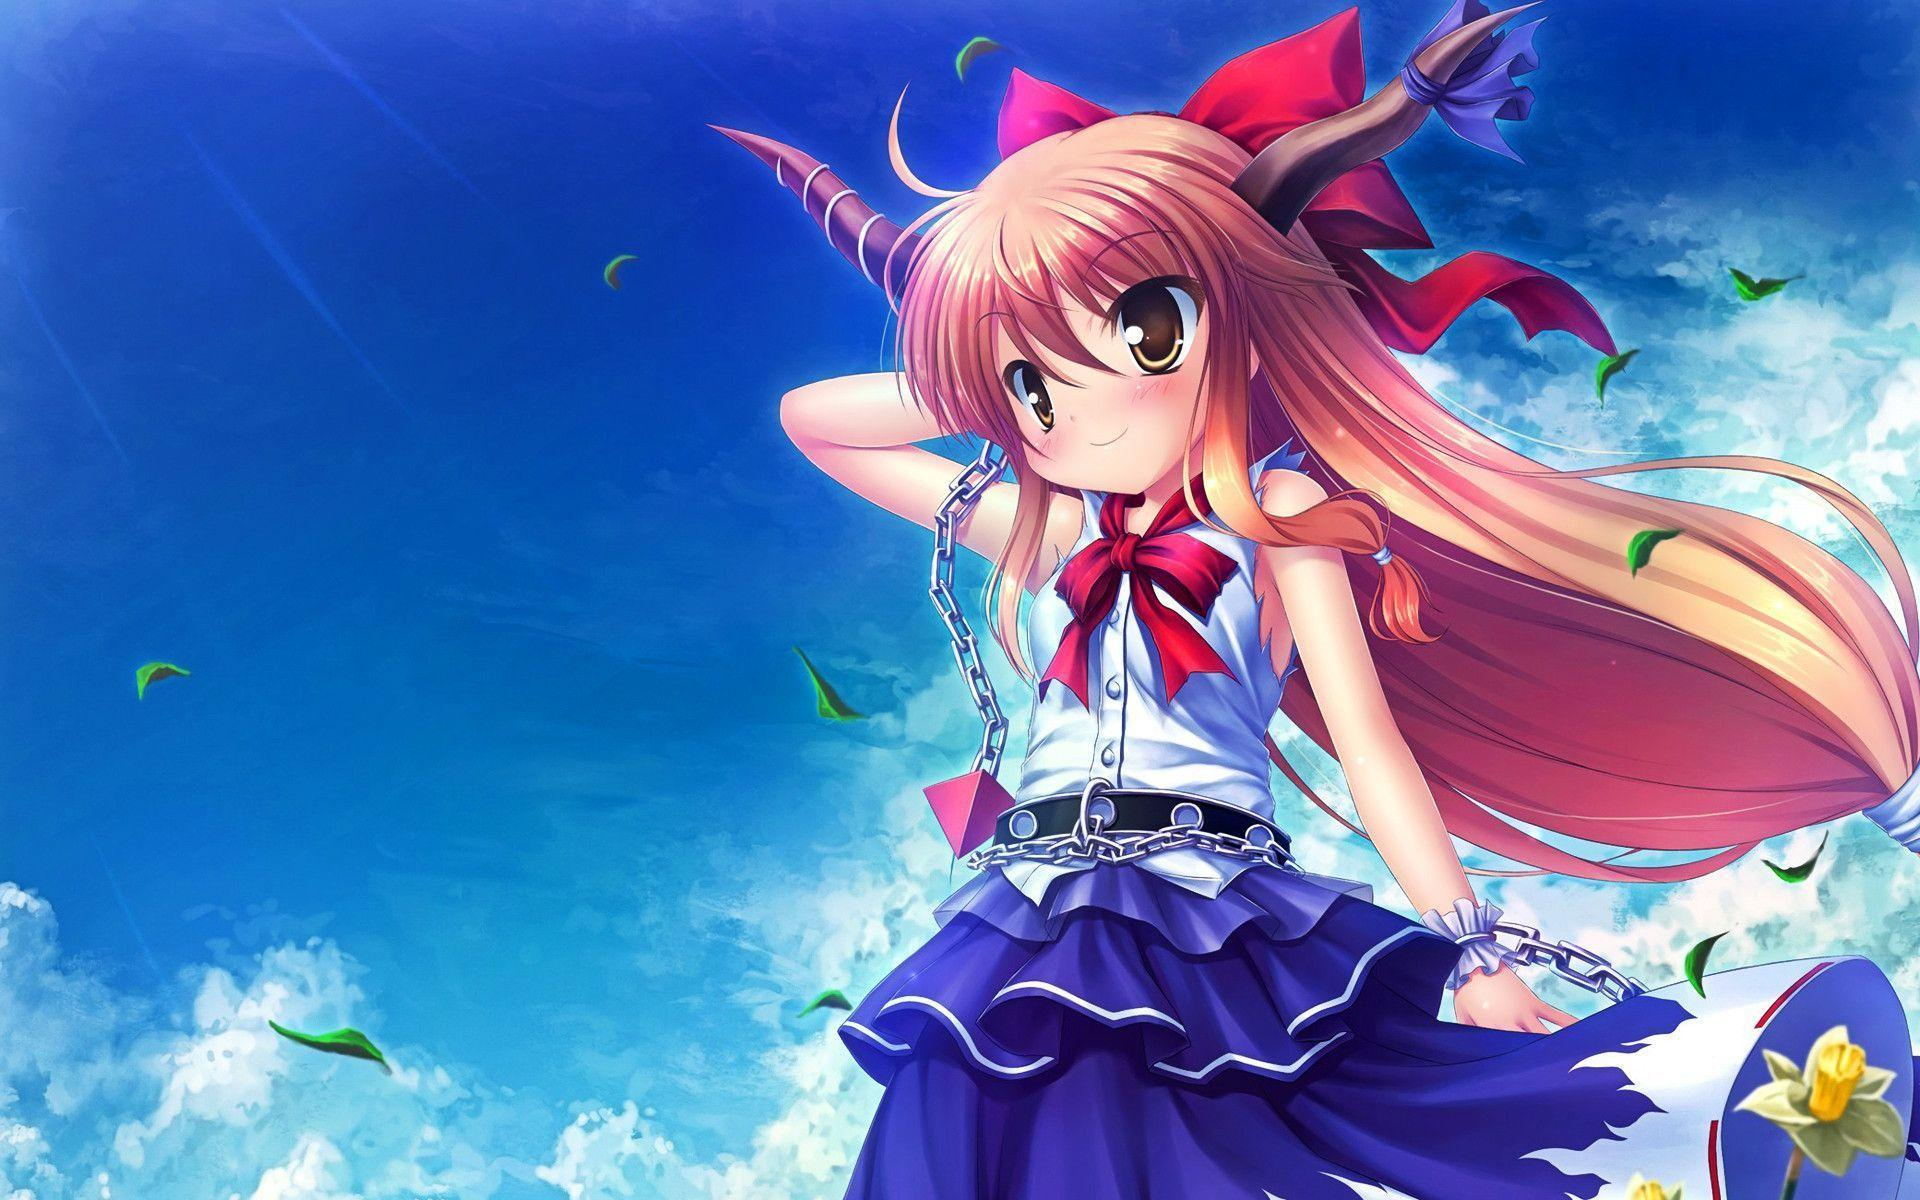 Wallpapers Anime Cute 1920x1200